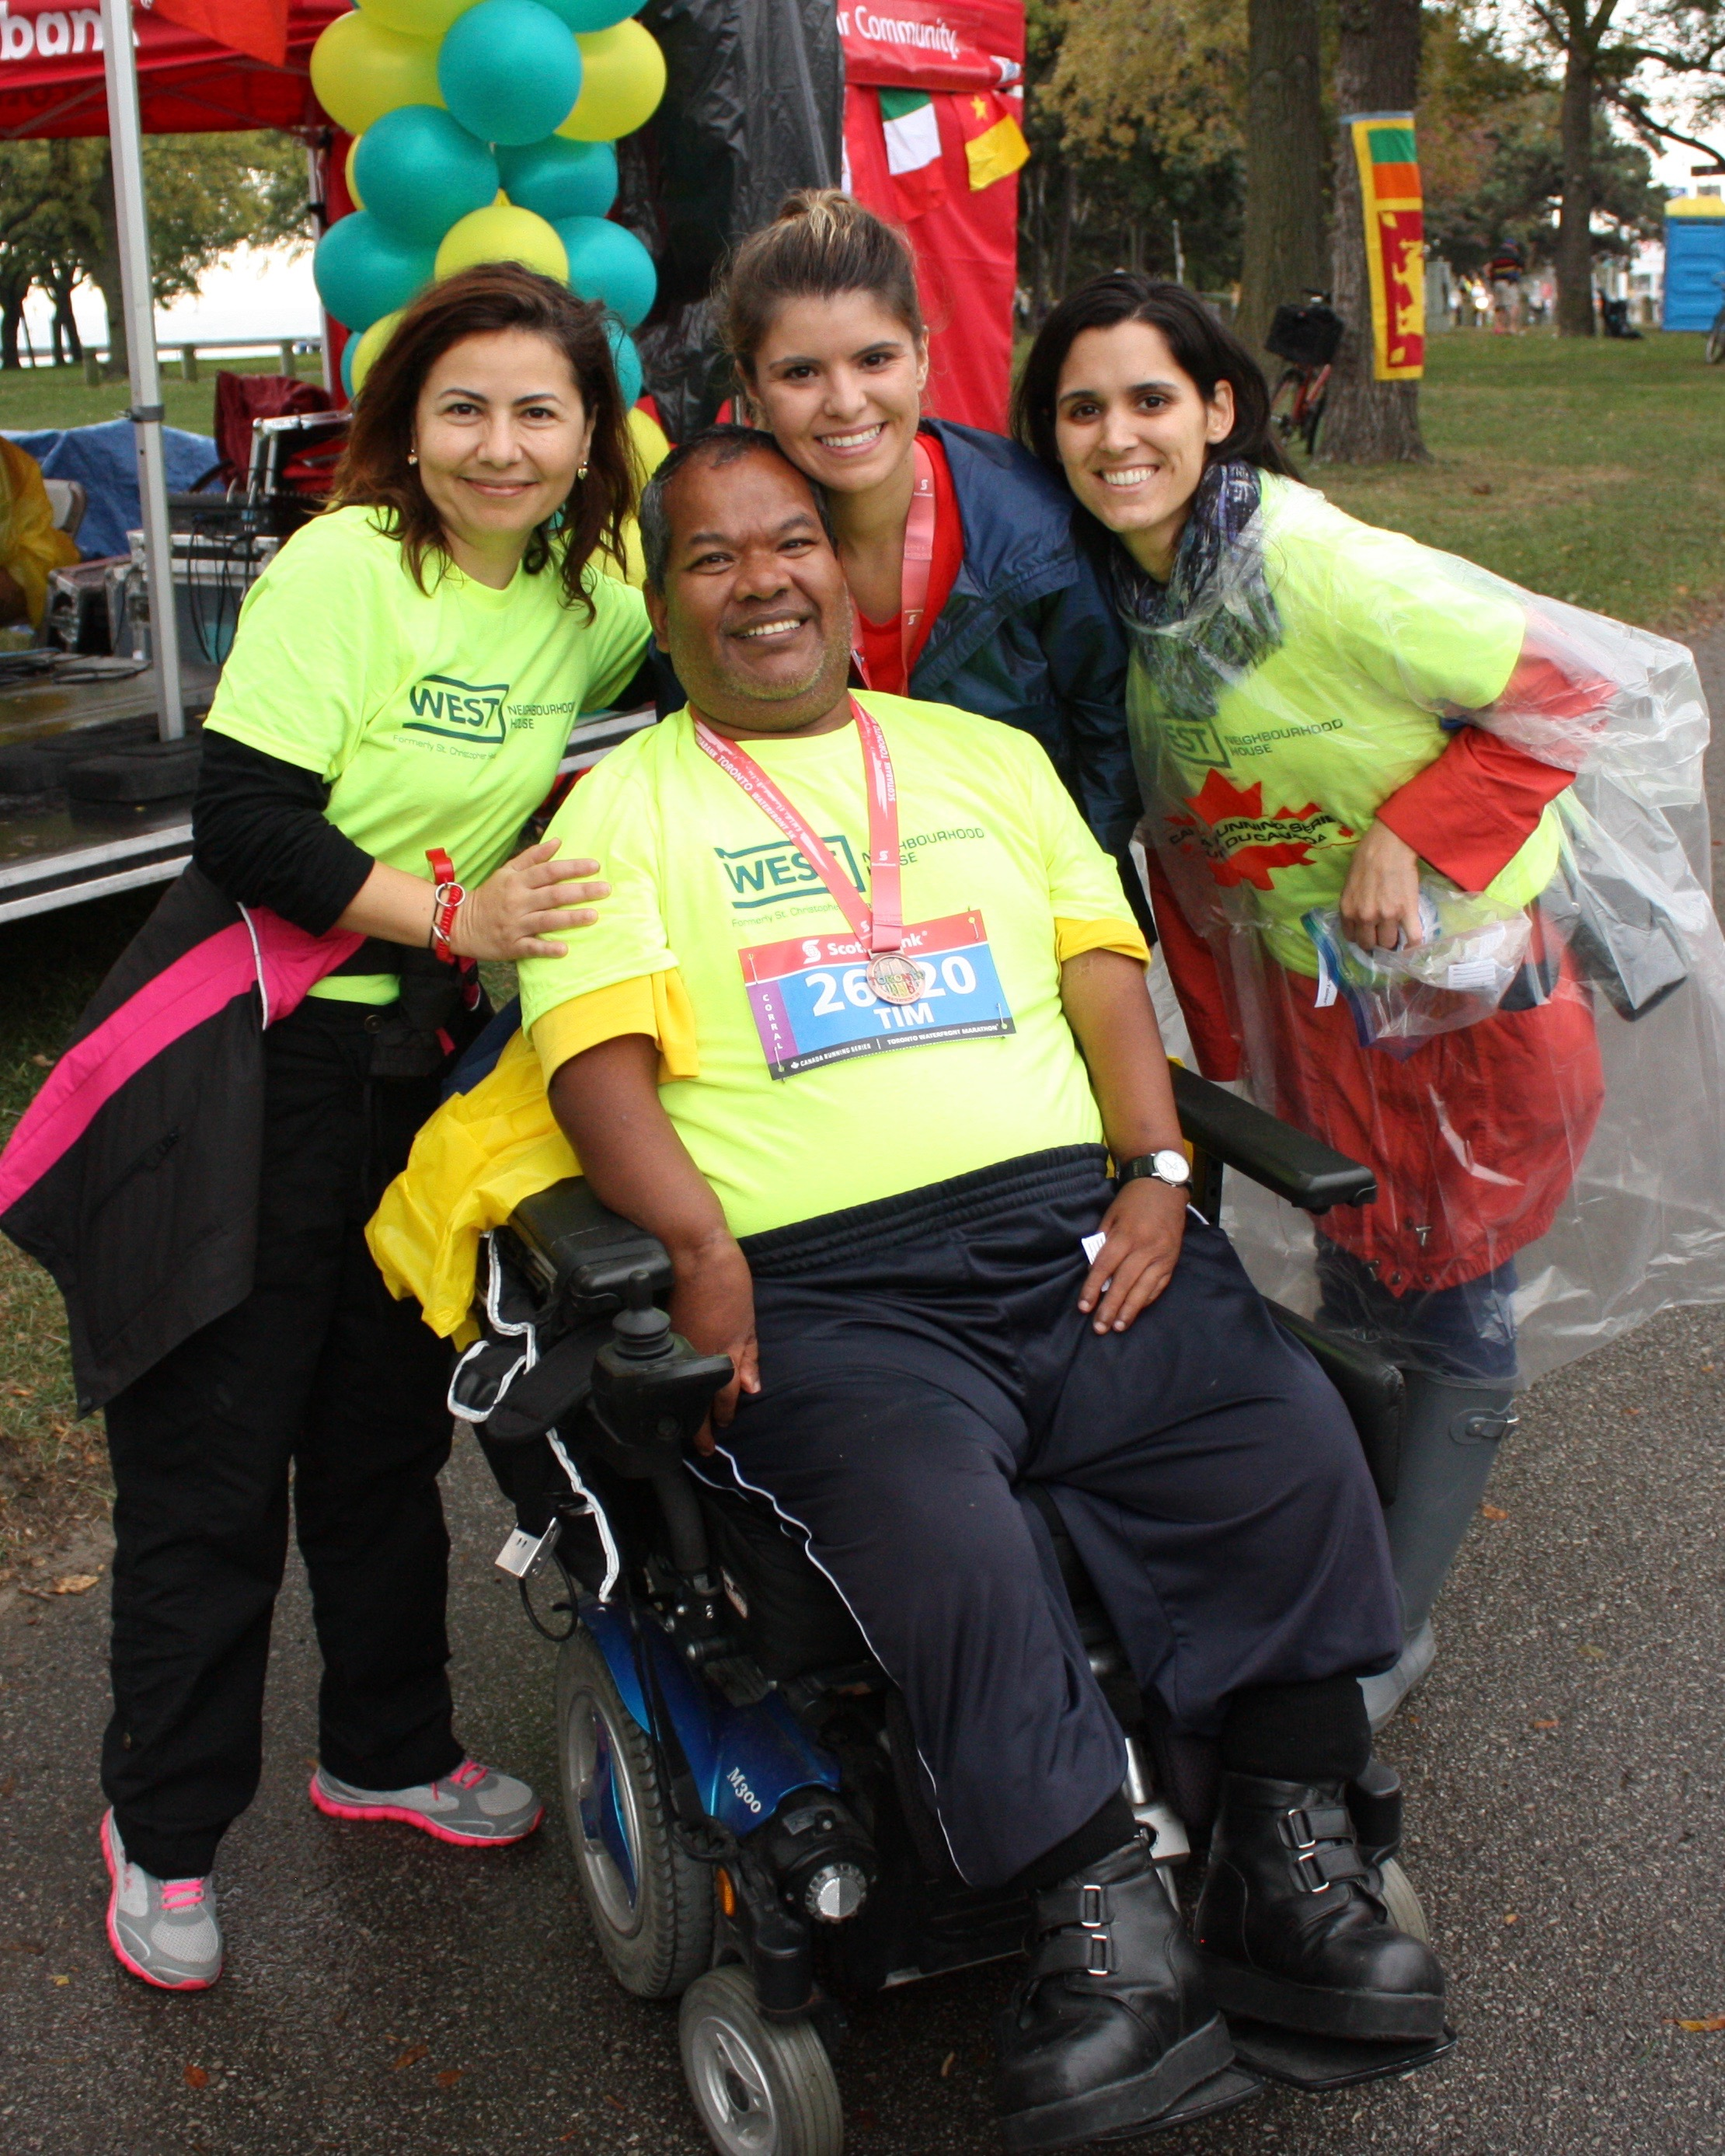 Join our Charity Challenge Team at the Scotiabank Marathon!